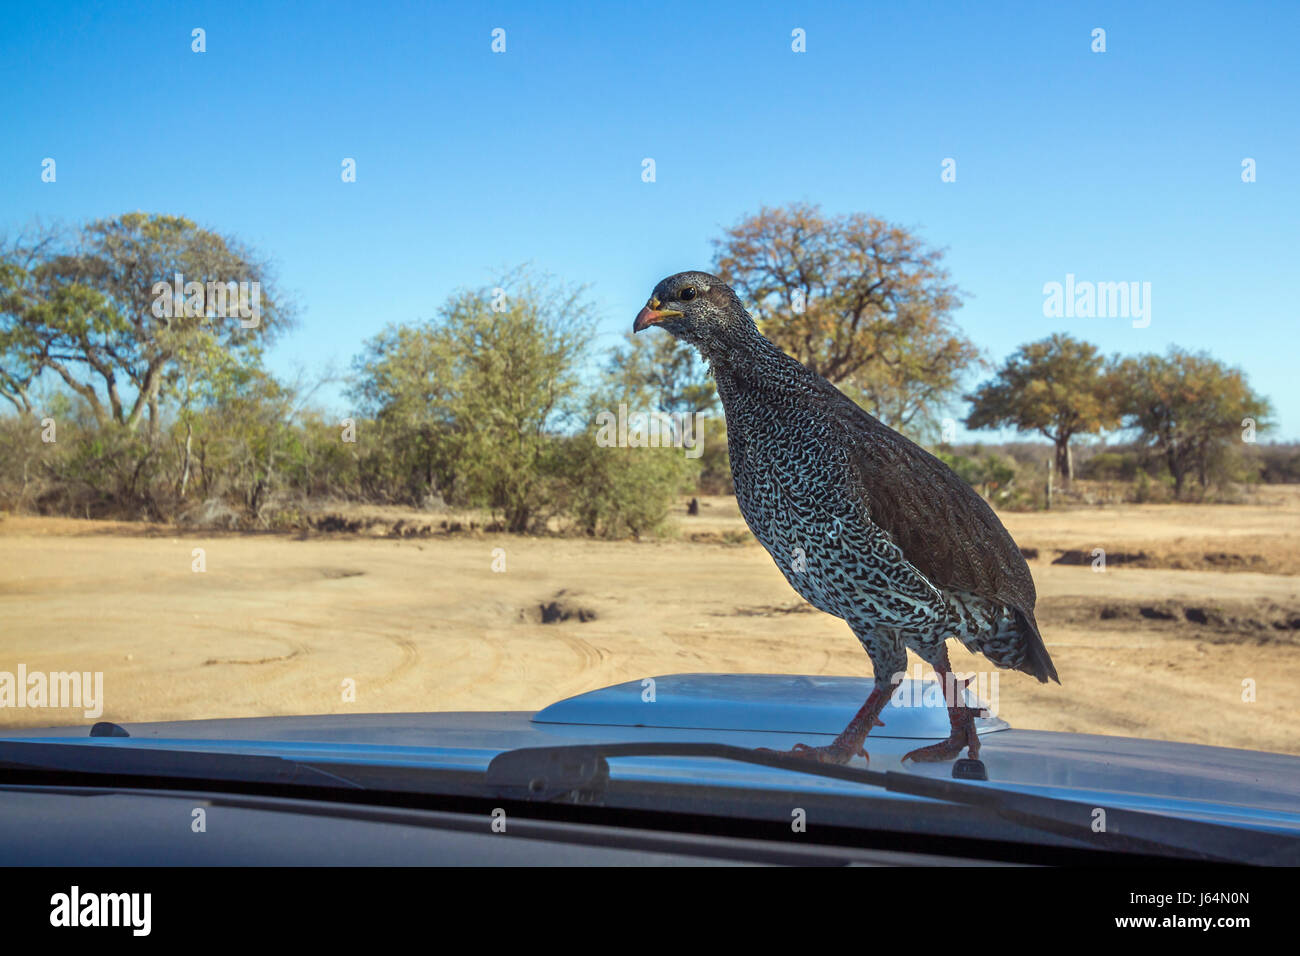 Natal francolin in Kruger national park, South Africa ; Specie Pternistis natalensis family of Phasianidae - Stock Image